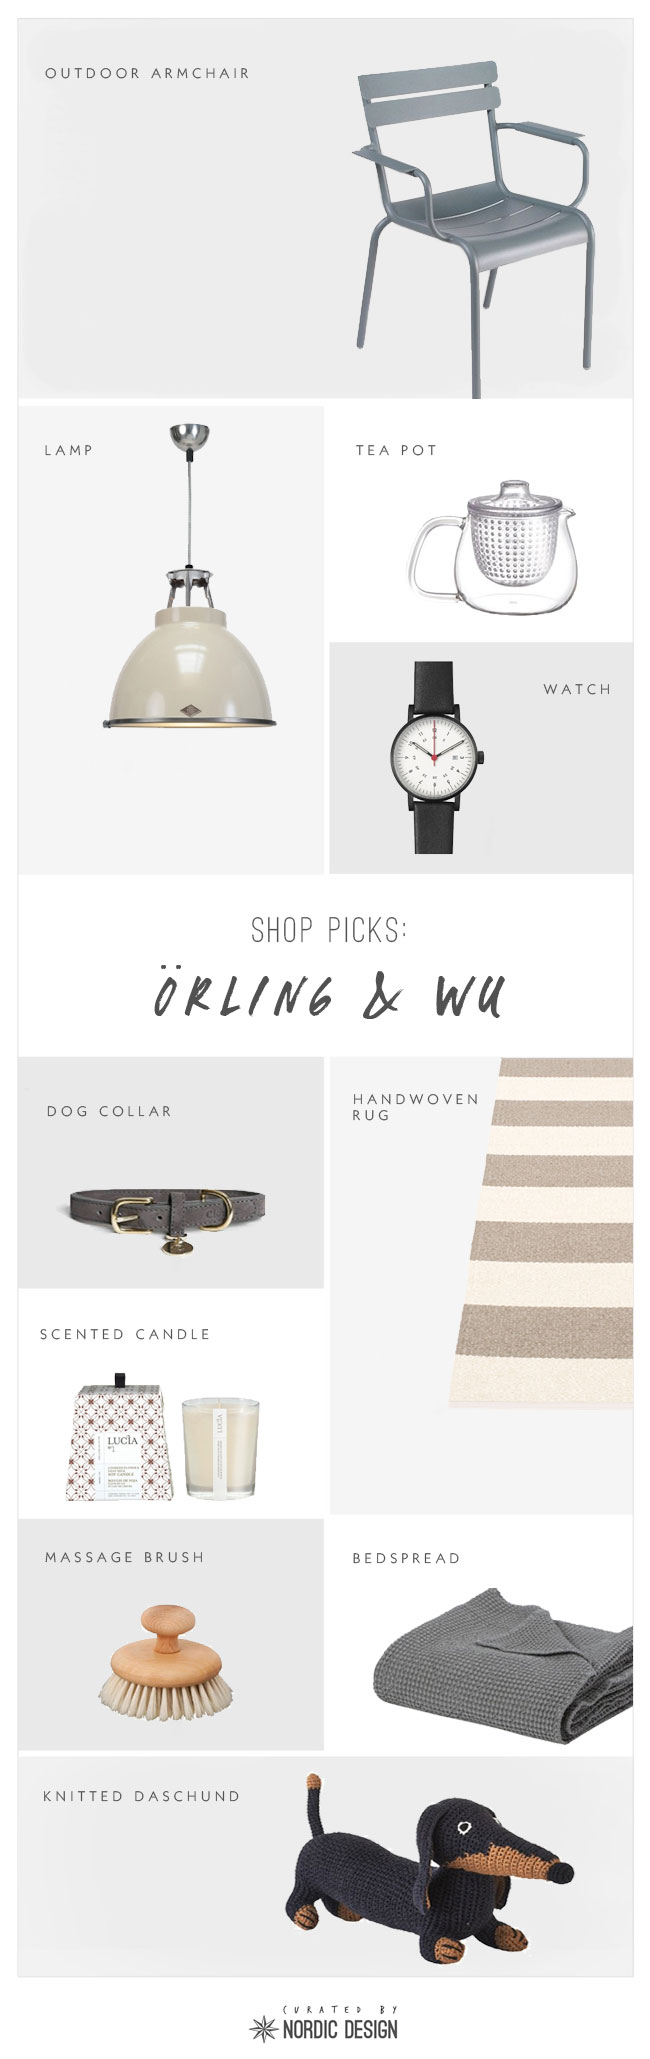 Shop-picks-ORLING-AND-WU